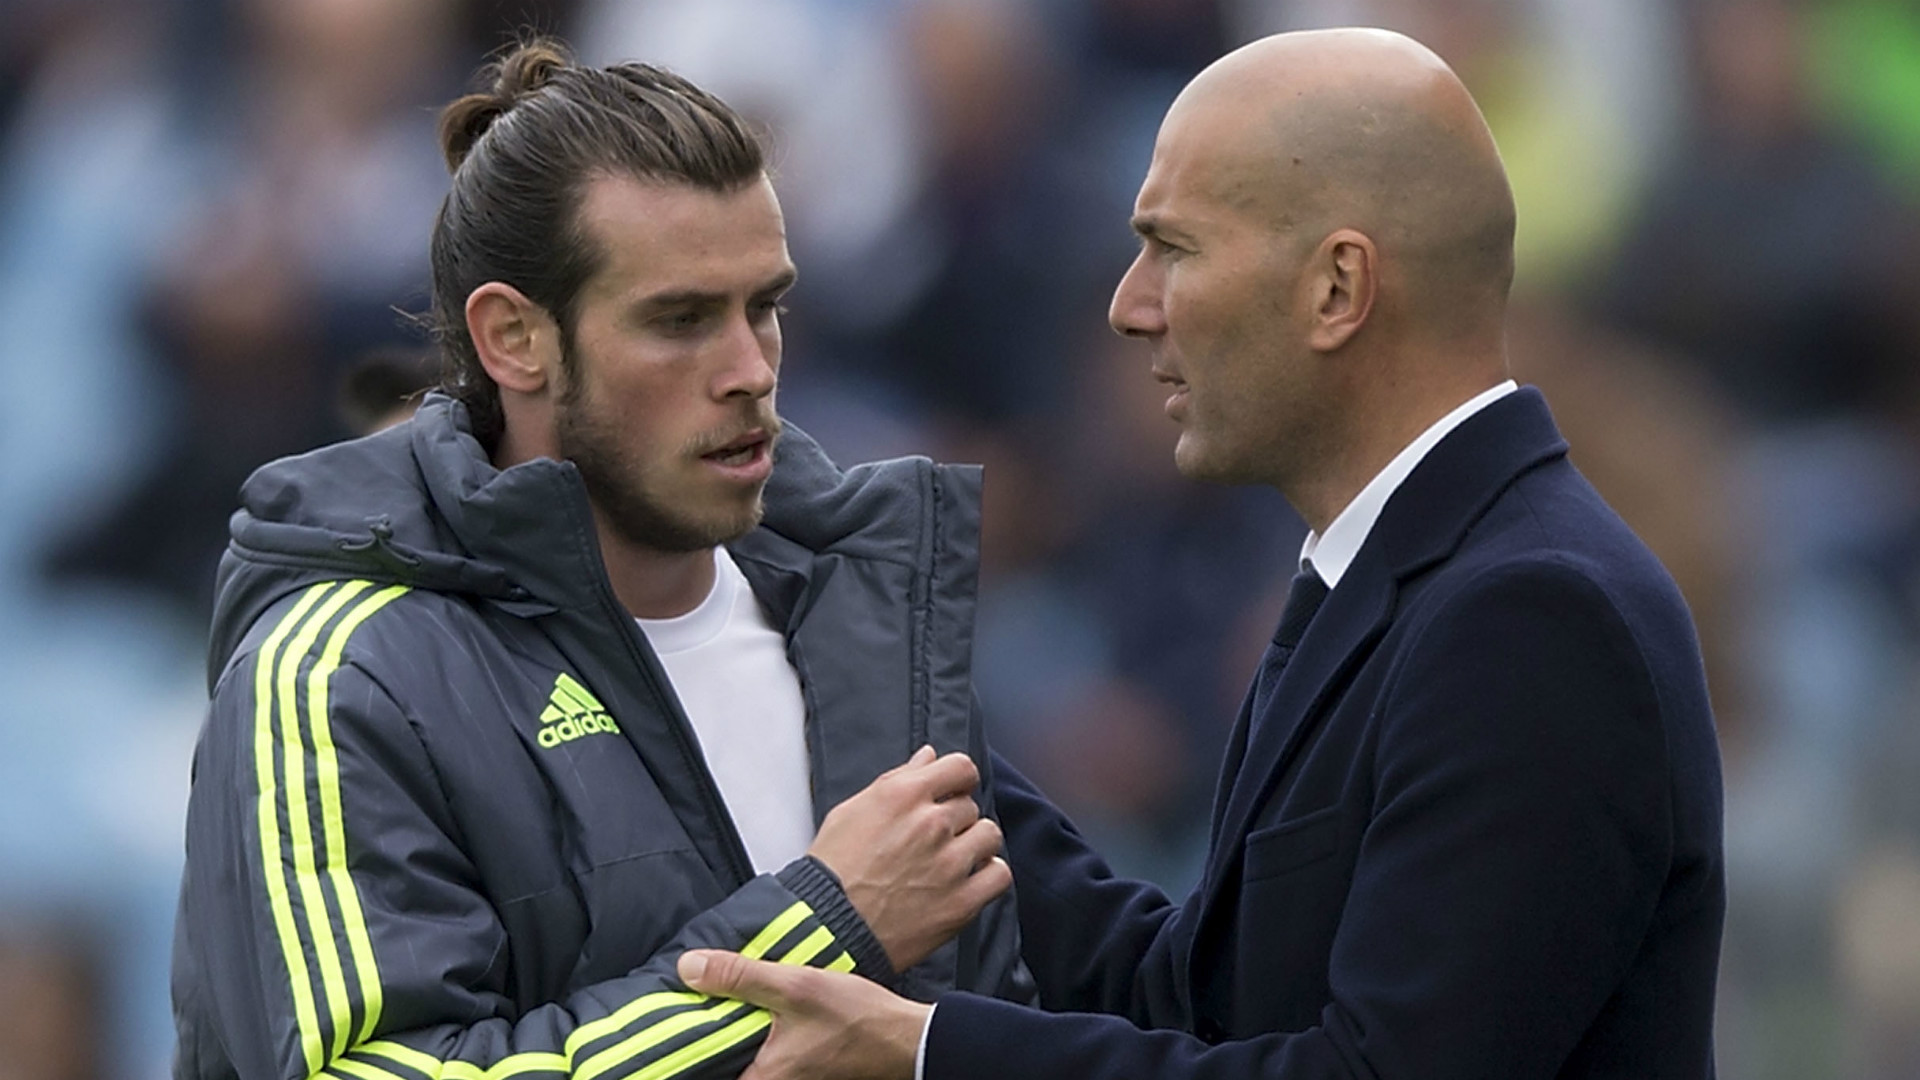 'Bale could get second chance at Real Madrid' – Redknapp surprised by treatment of ex-Spurs star